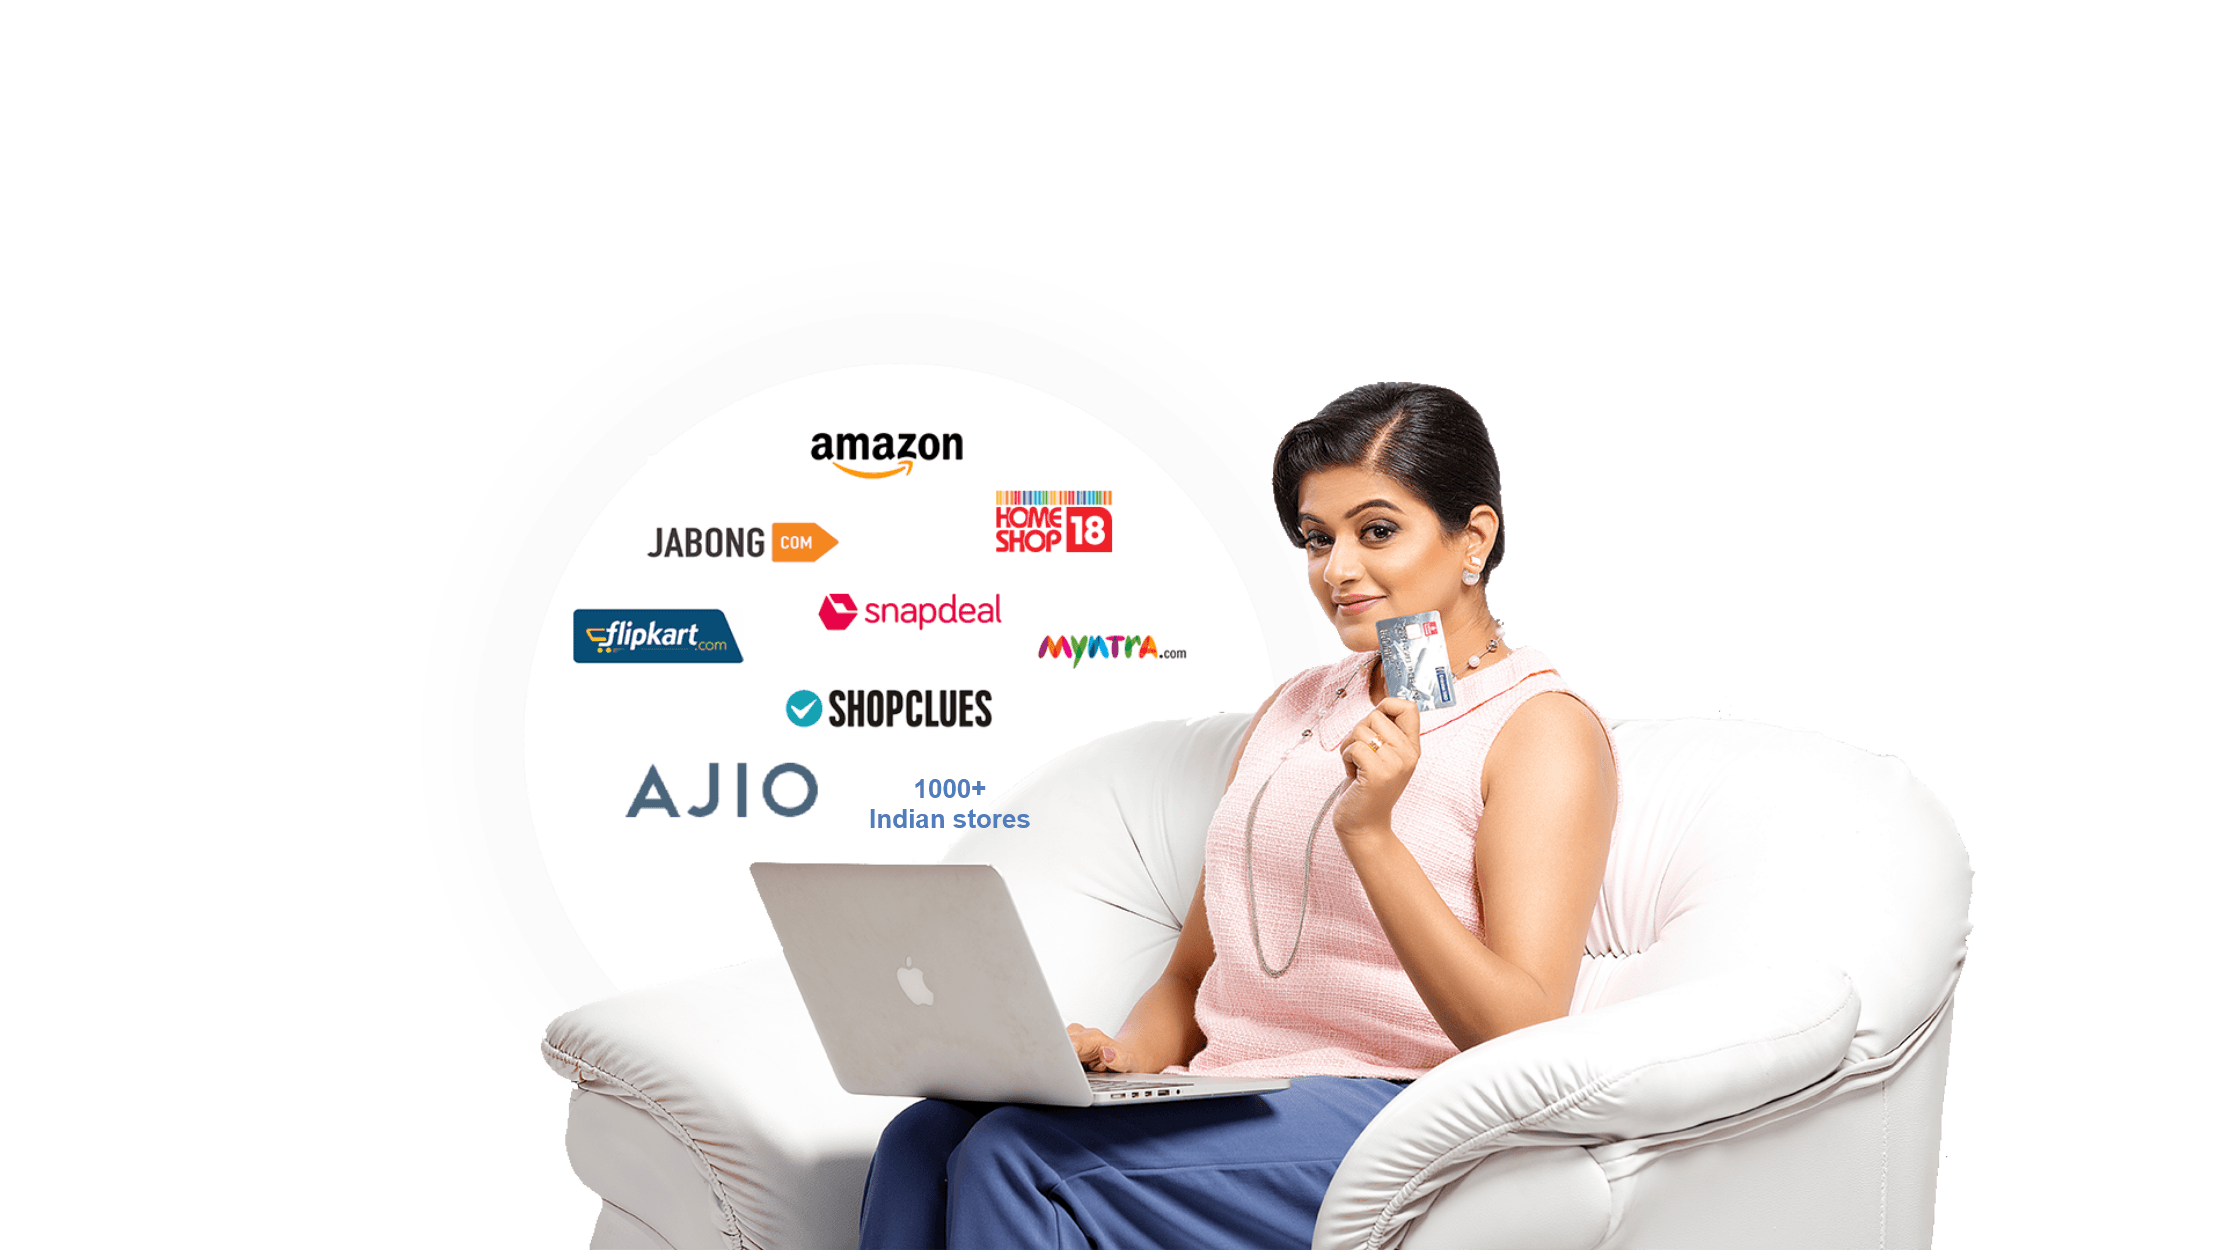 personal shopper service in india